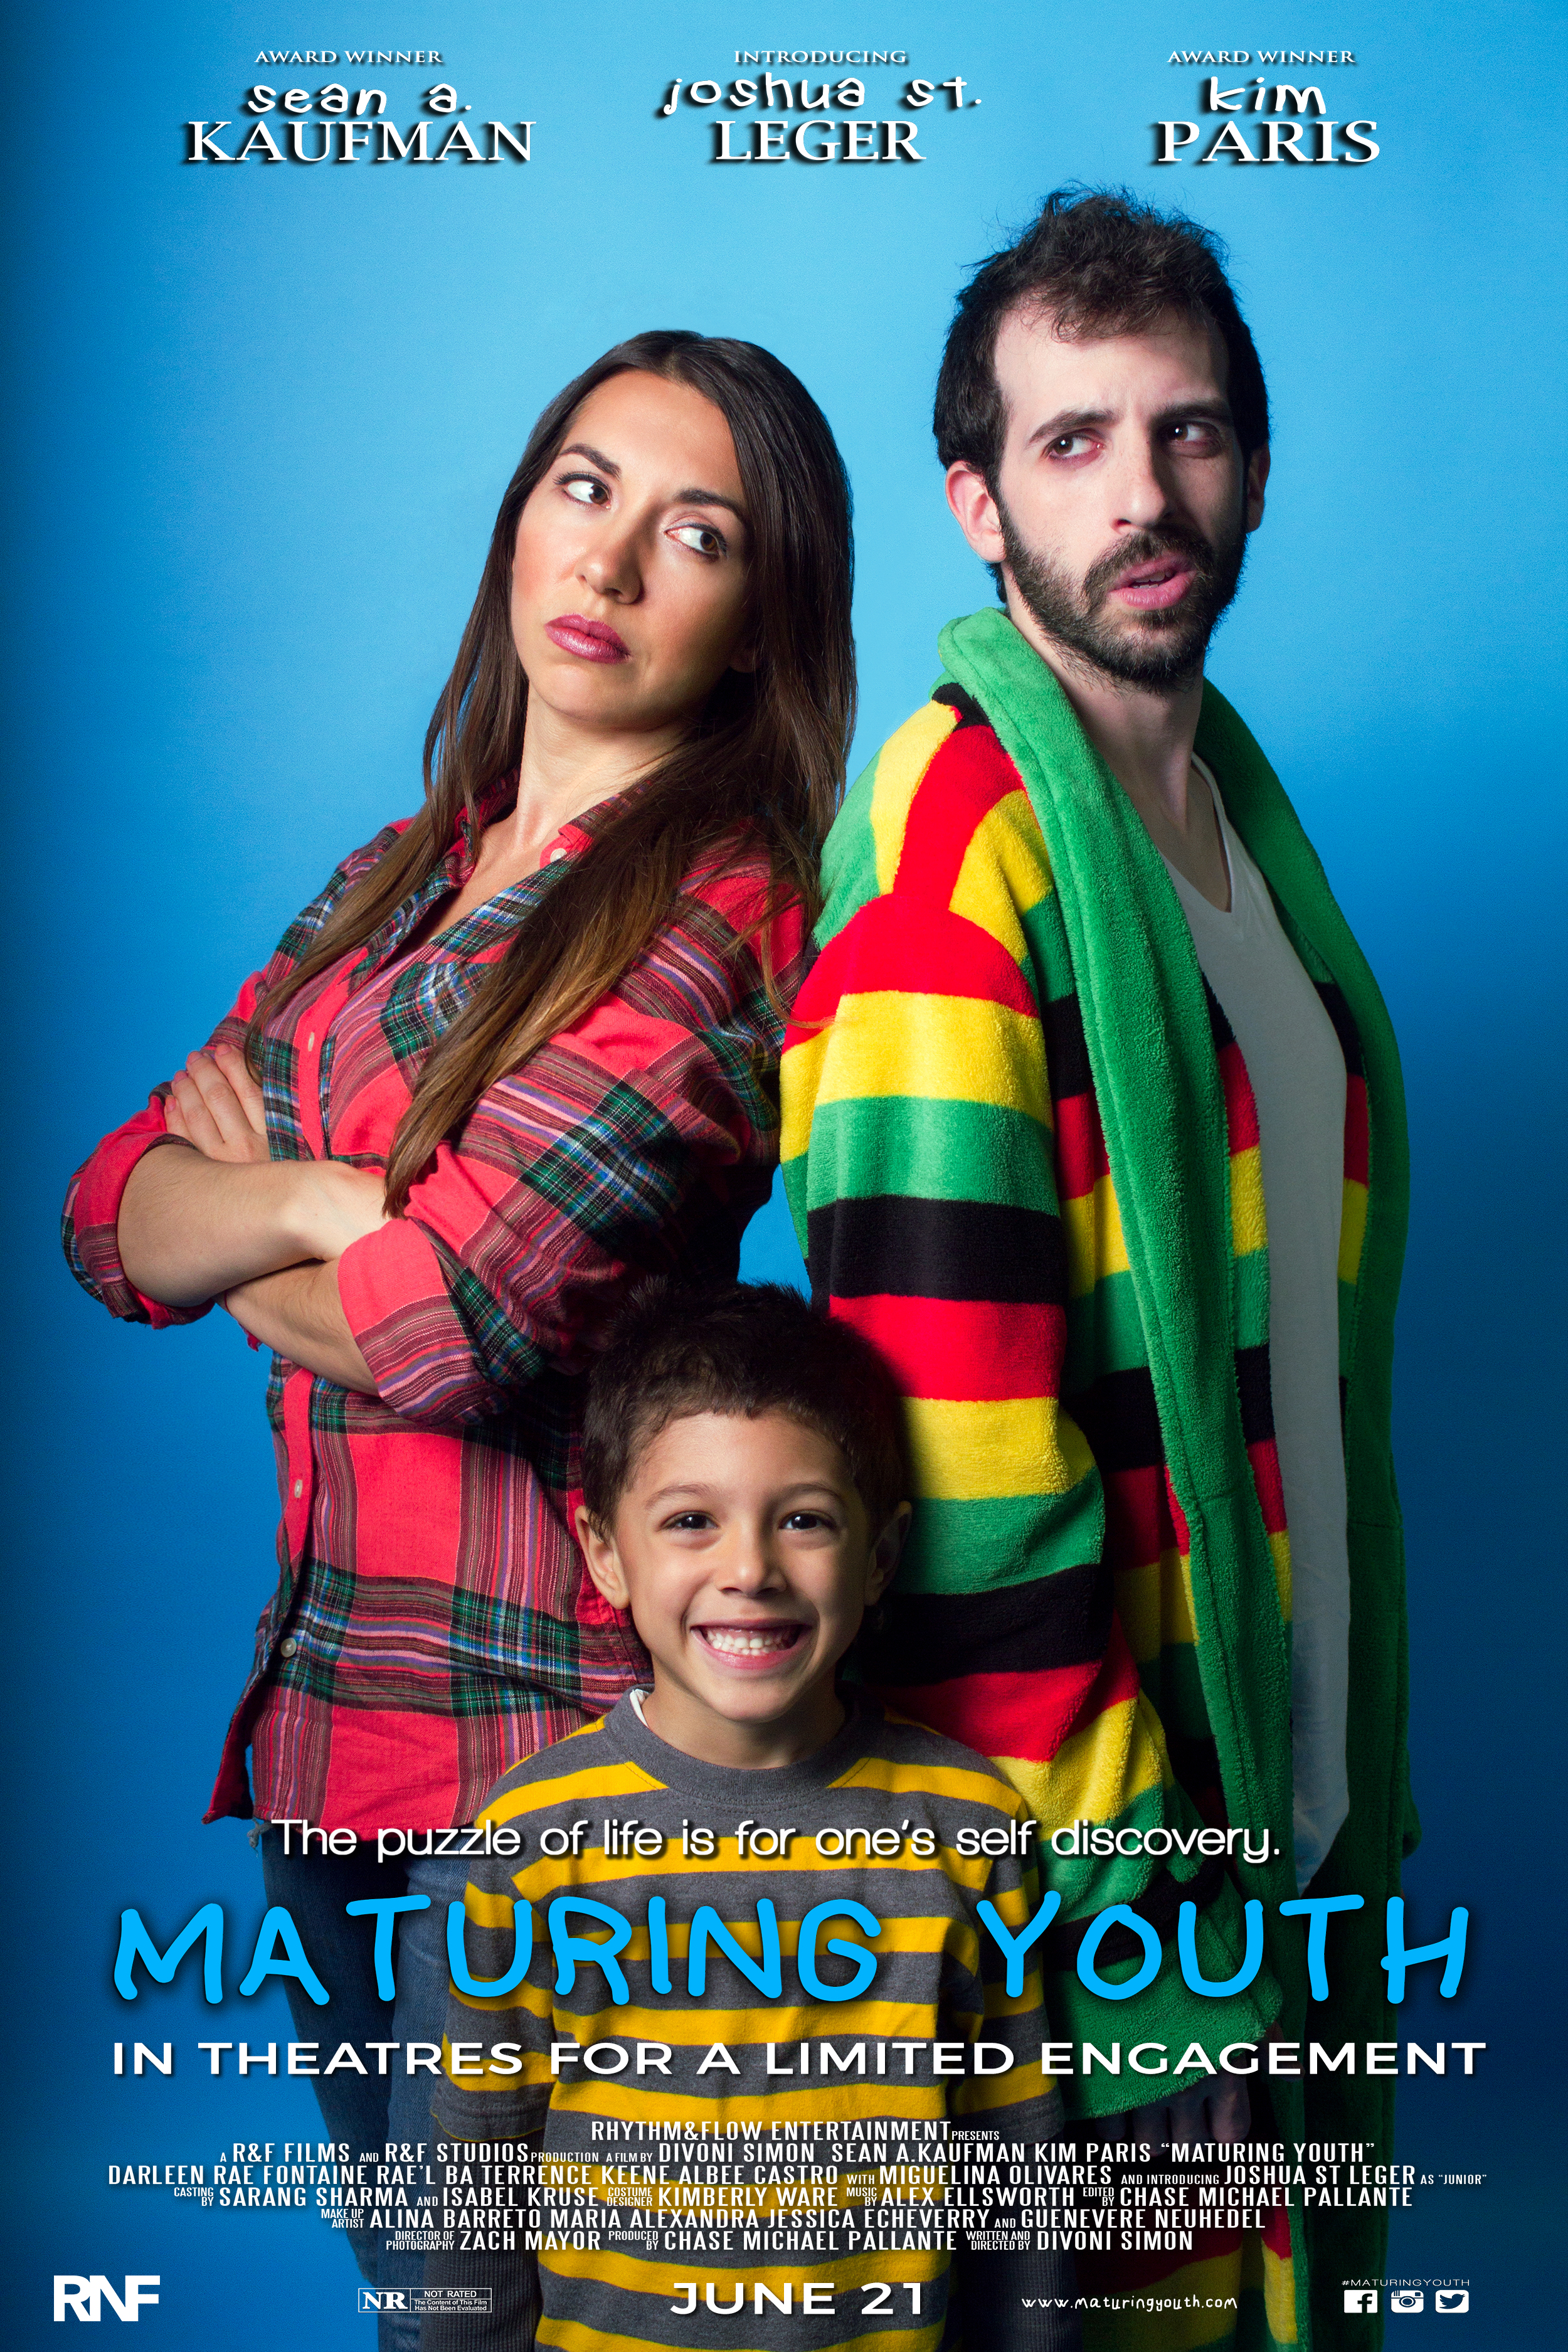 Movie Poster for Maturing Youth | Courtesy of RNF